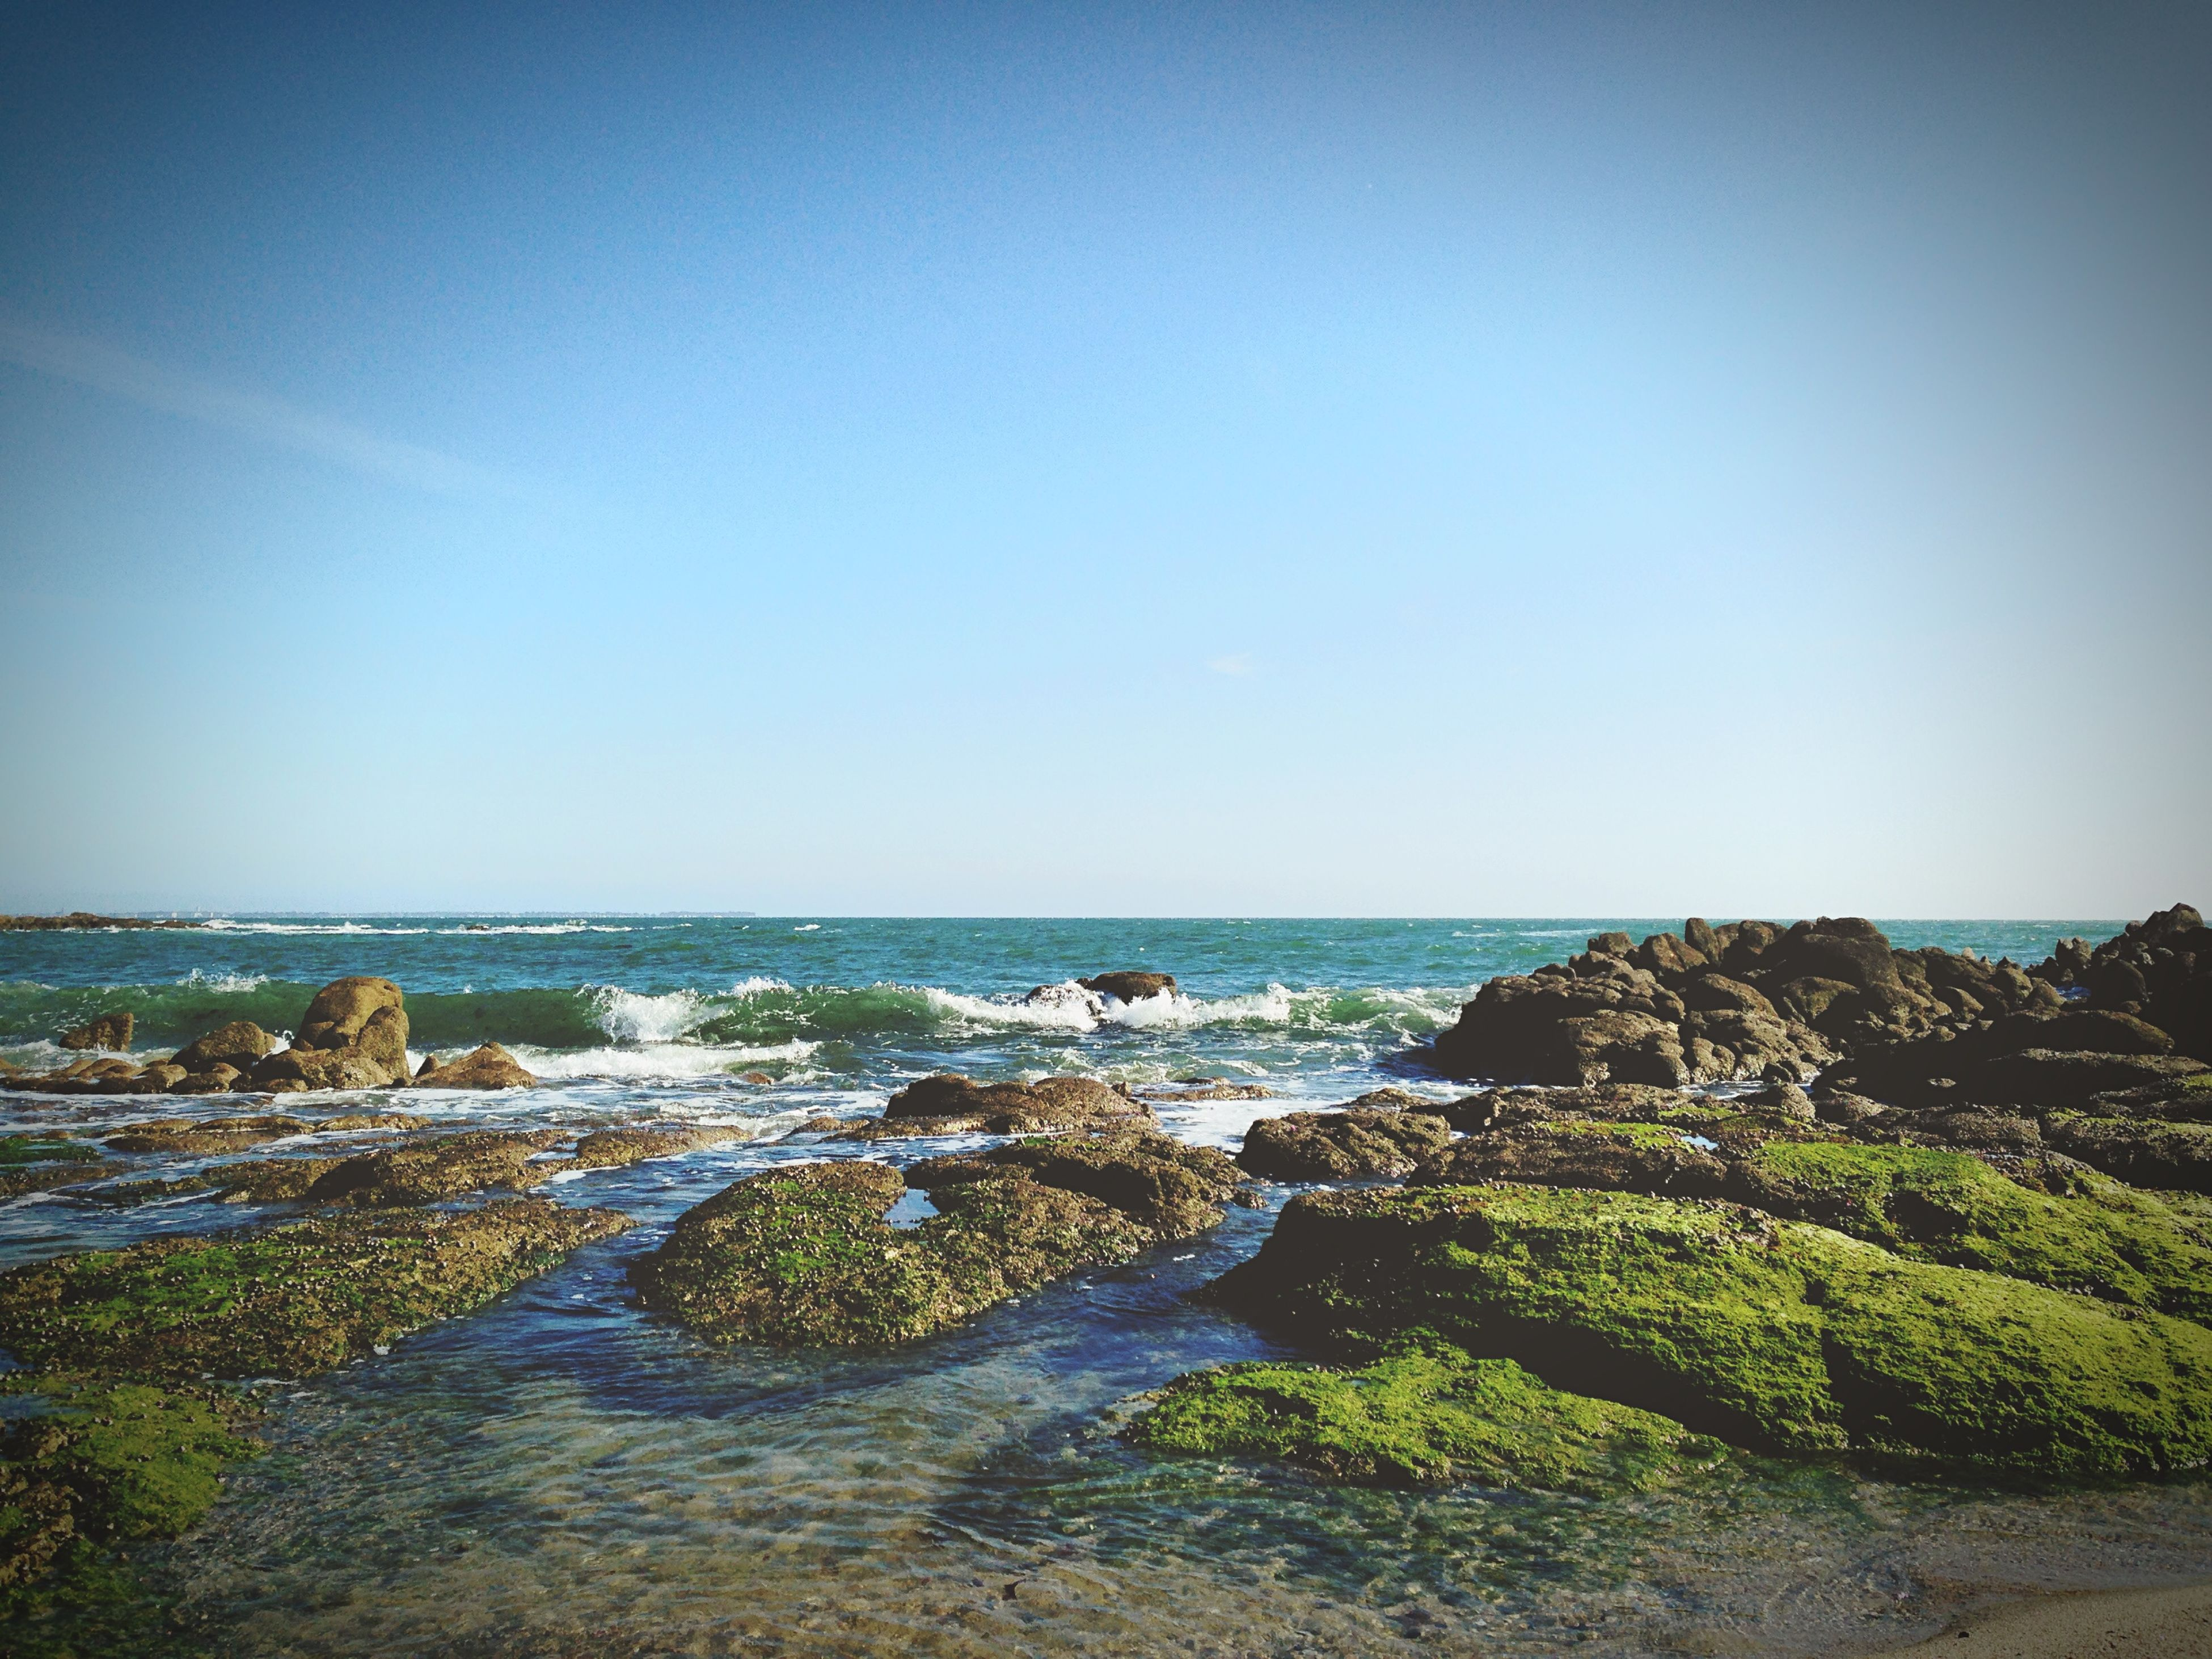 sea, water, horizon over water, scenics, tranquil scene, clear sky, beauty in nature, tranquility, copy space, nature, rock - object, blue, beach, rock formation, coastline, idyllic, shore, cliff, rock, sky